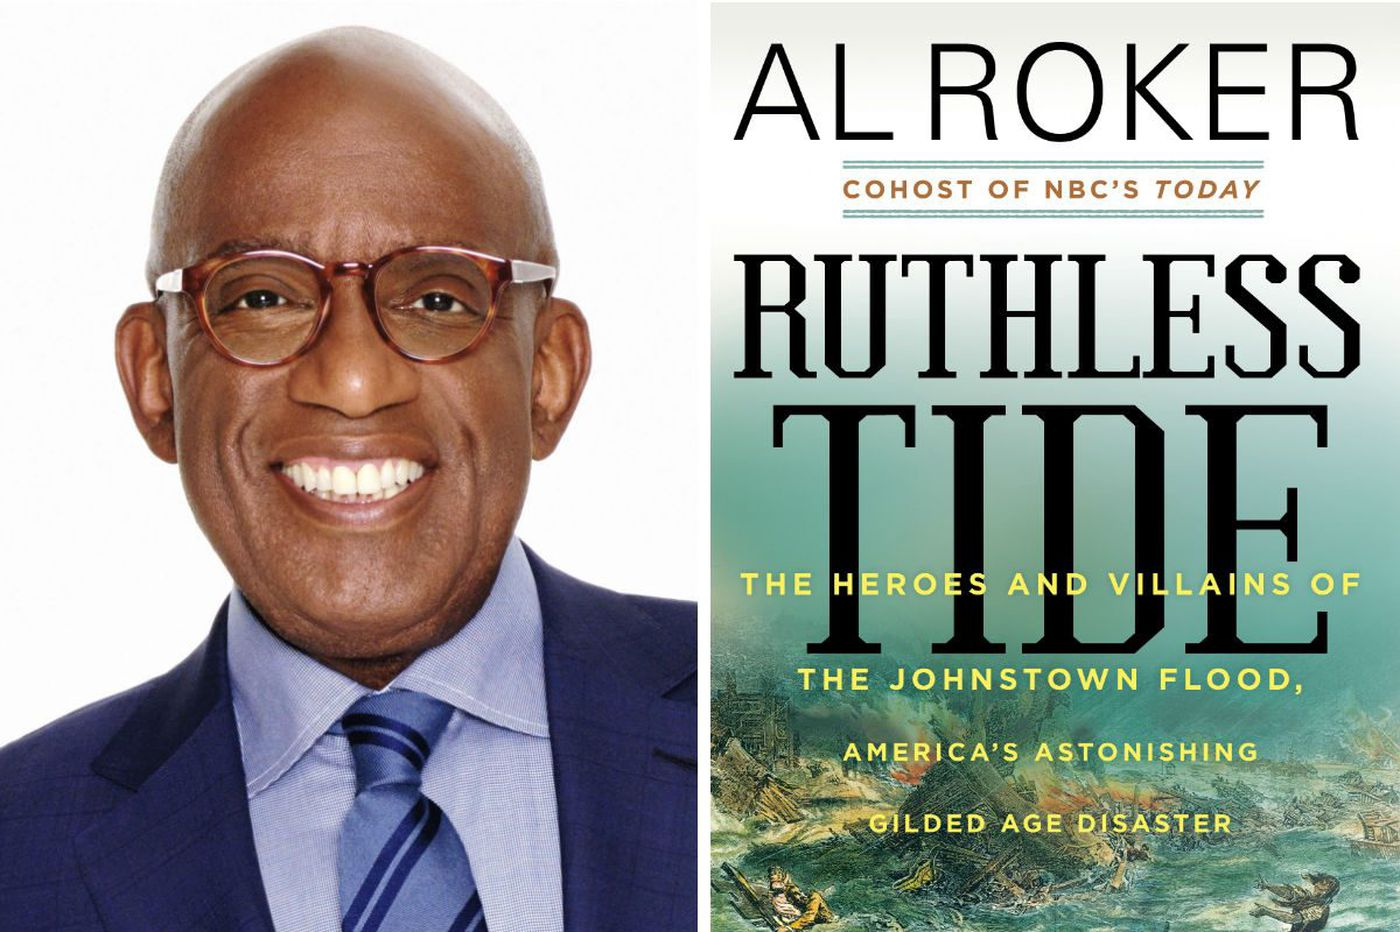 Al Roker's 'Ruthless Tide': The irresponsible Masters of the Universe who caused the Johnstown flood